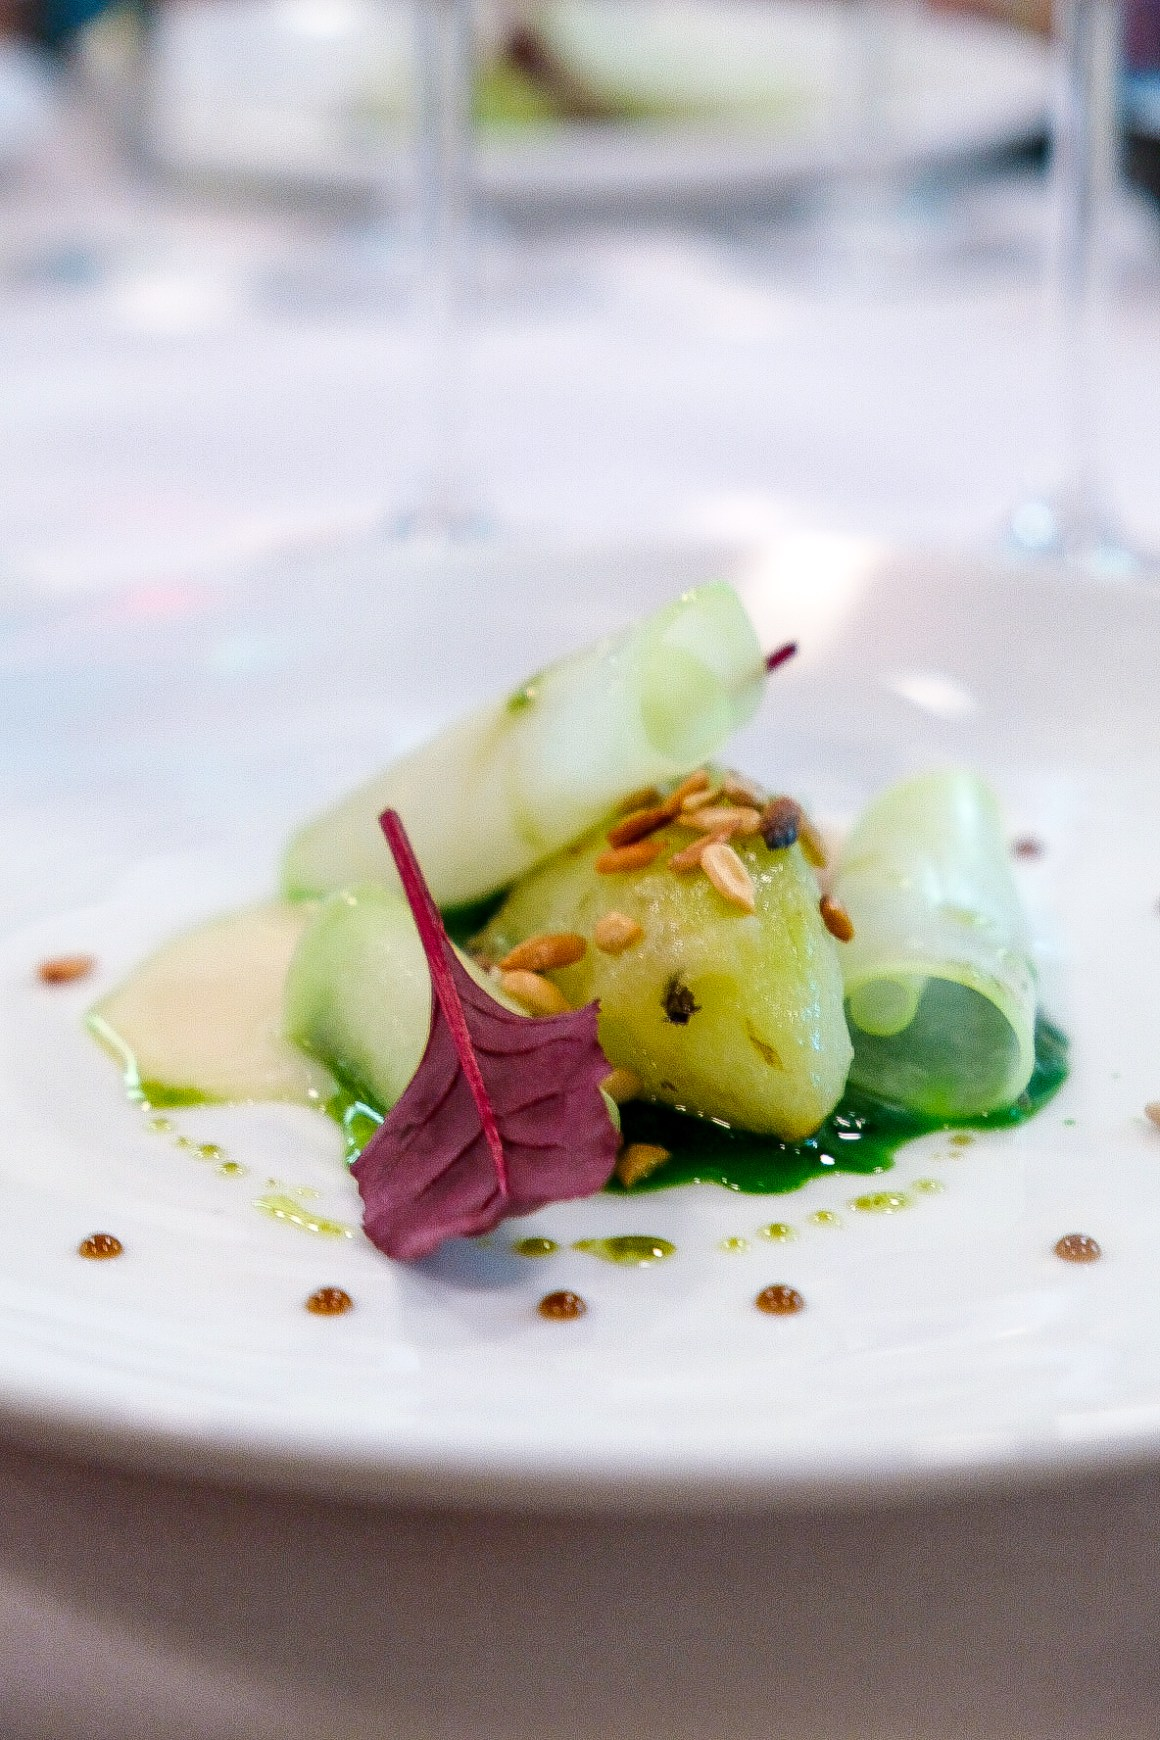 Restaurant Jag Celebrate Earth Day With Spring Produce - Menthe Verte, Chayote, Sunflower Seed